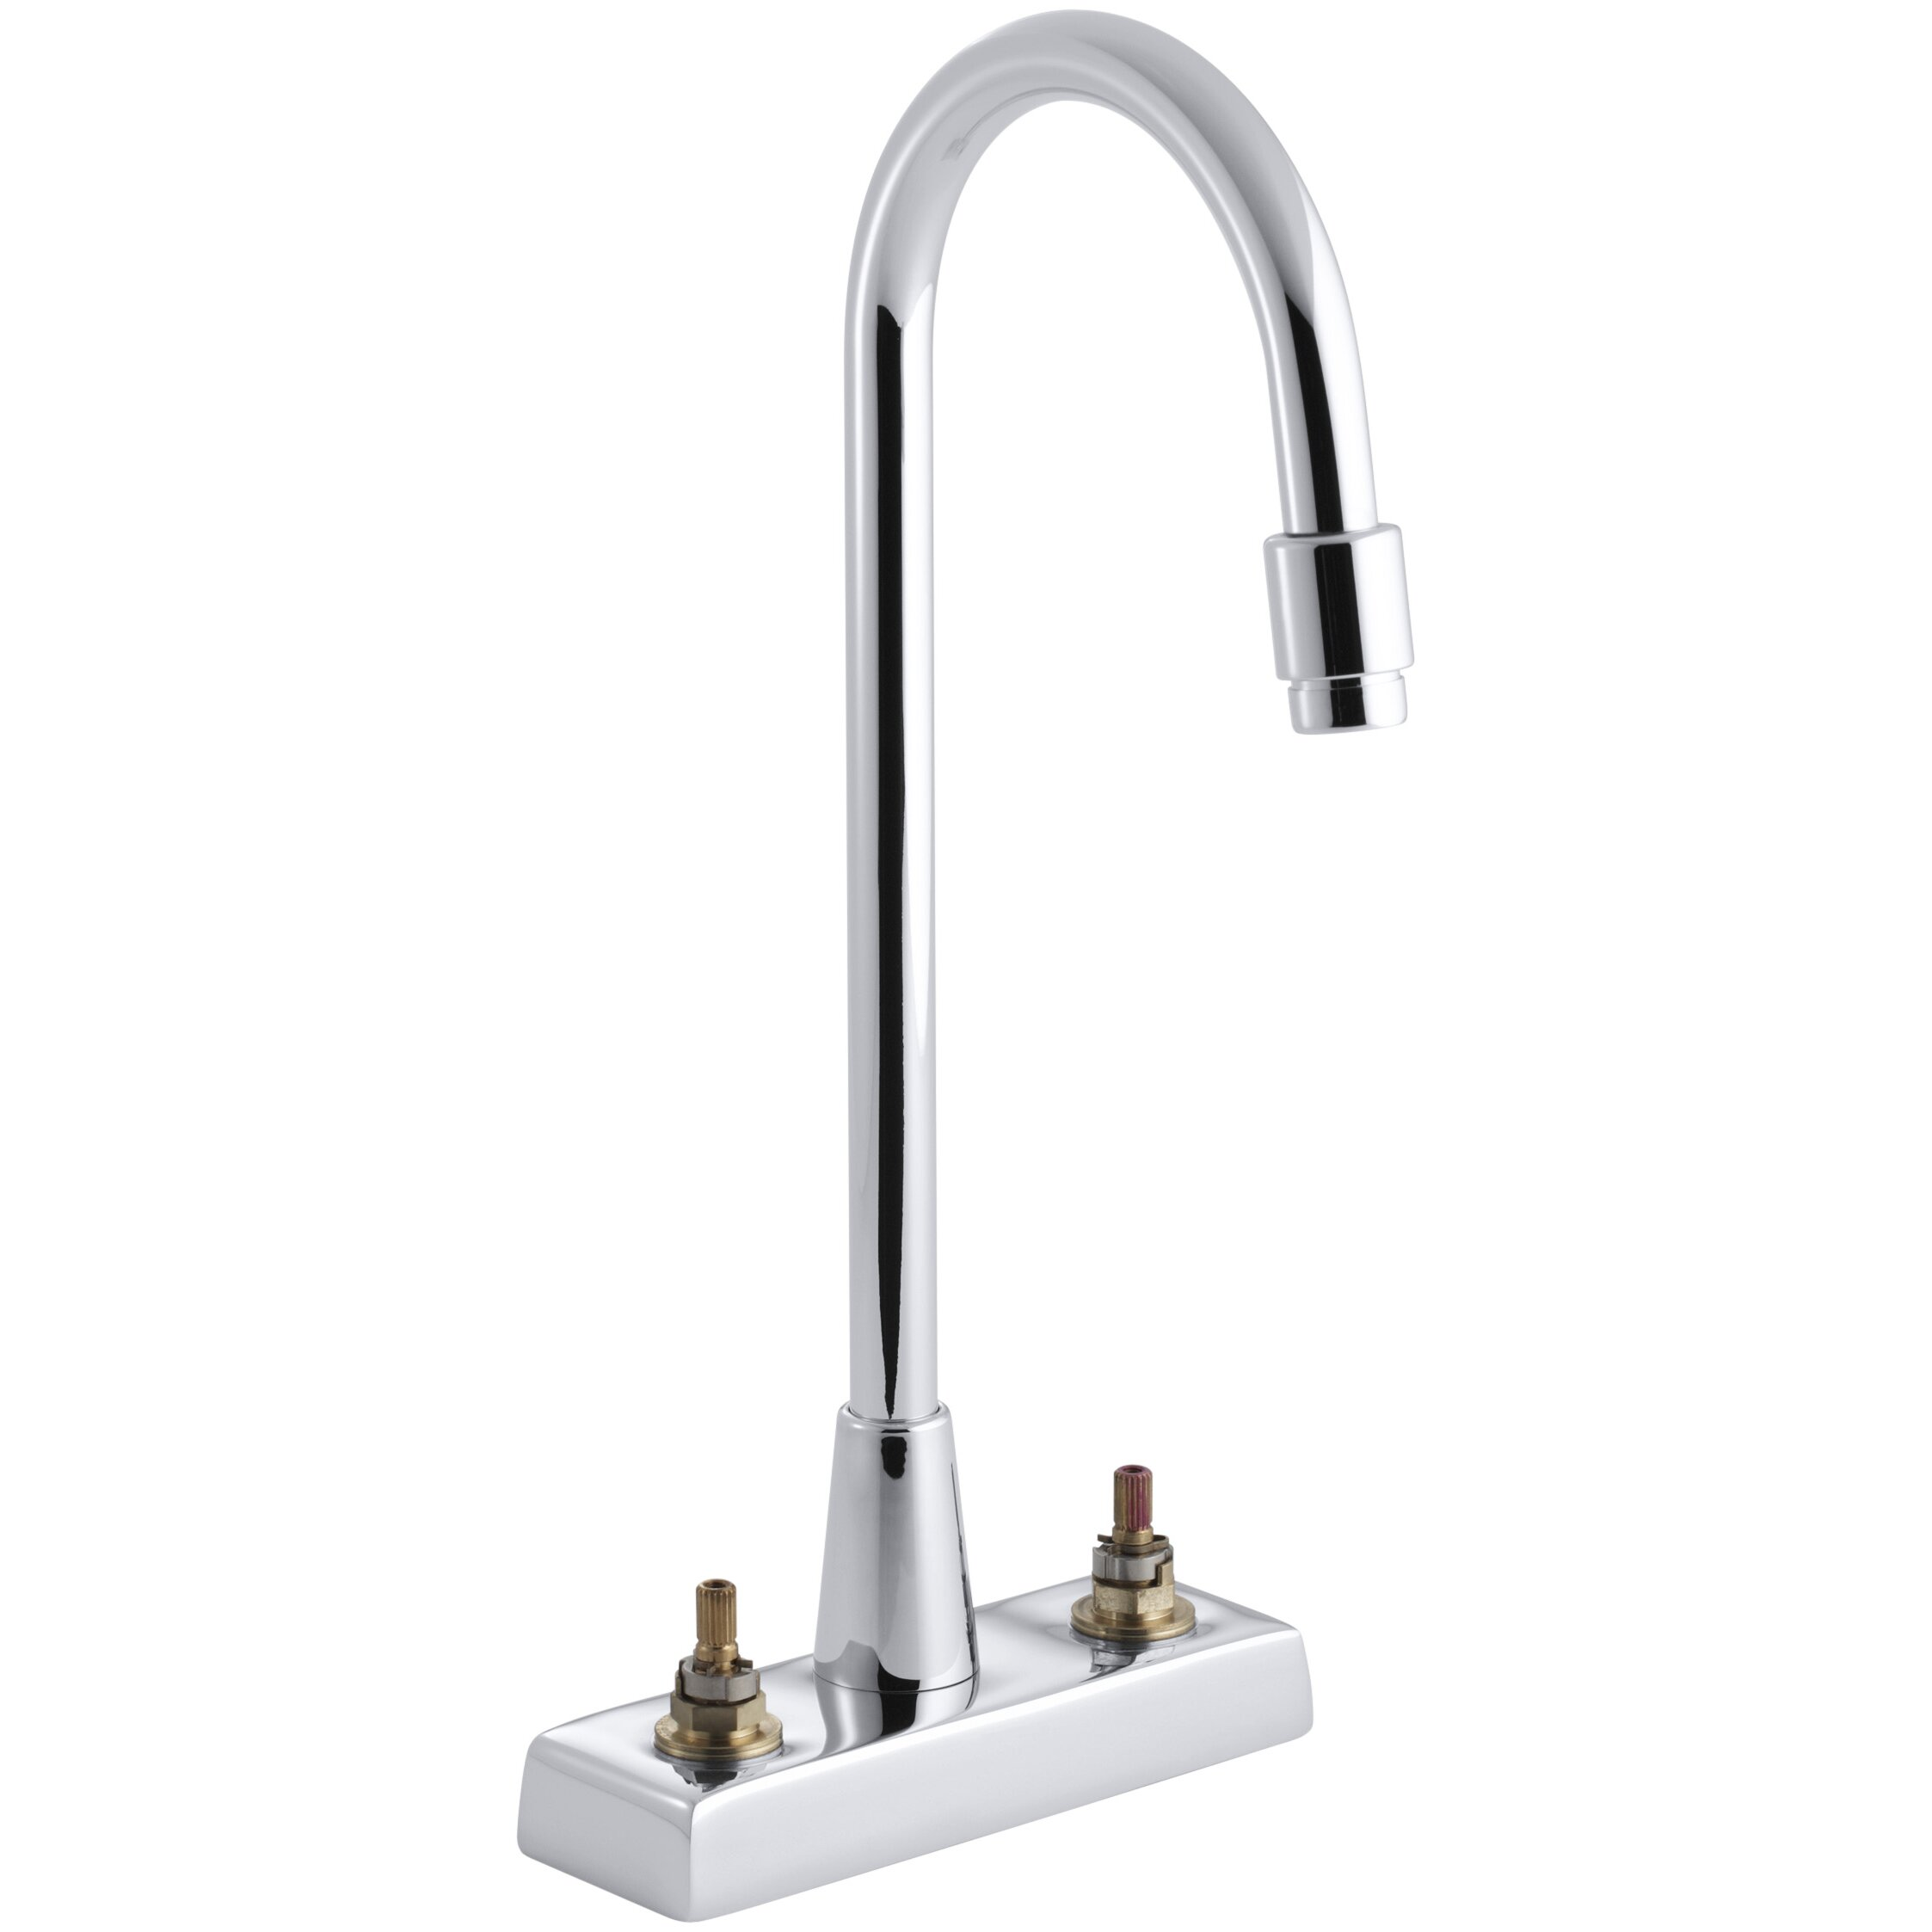 kohler triton centerset commercial bathroom sink faucet with gooseneck spout and vandal. Black Bedroom Furniture Sets. Home Design Ideas